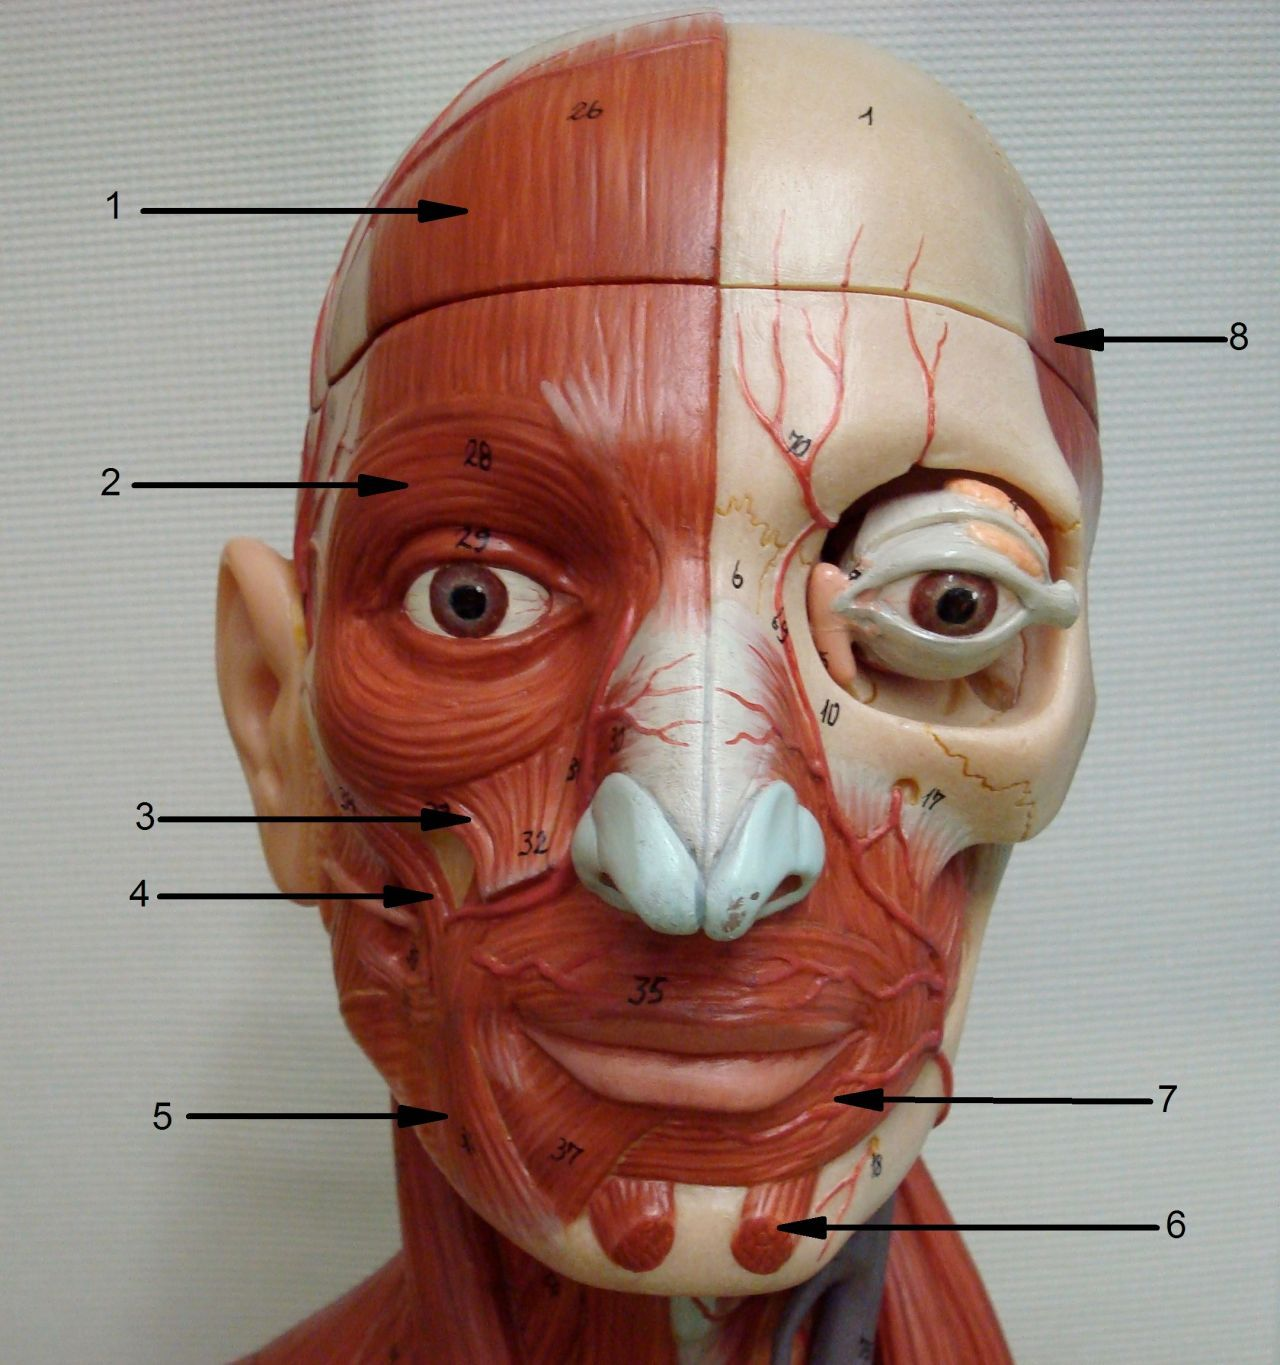 Human Muscle Of Face Human Anatomy Diagram